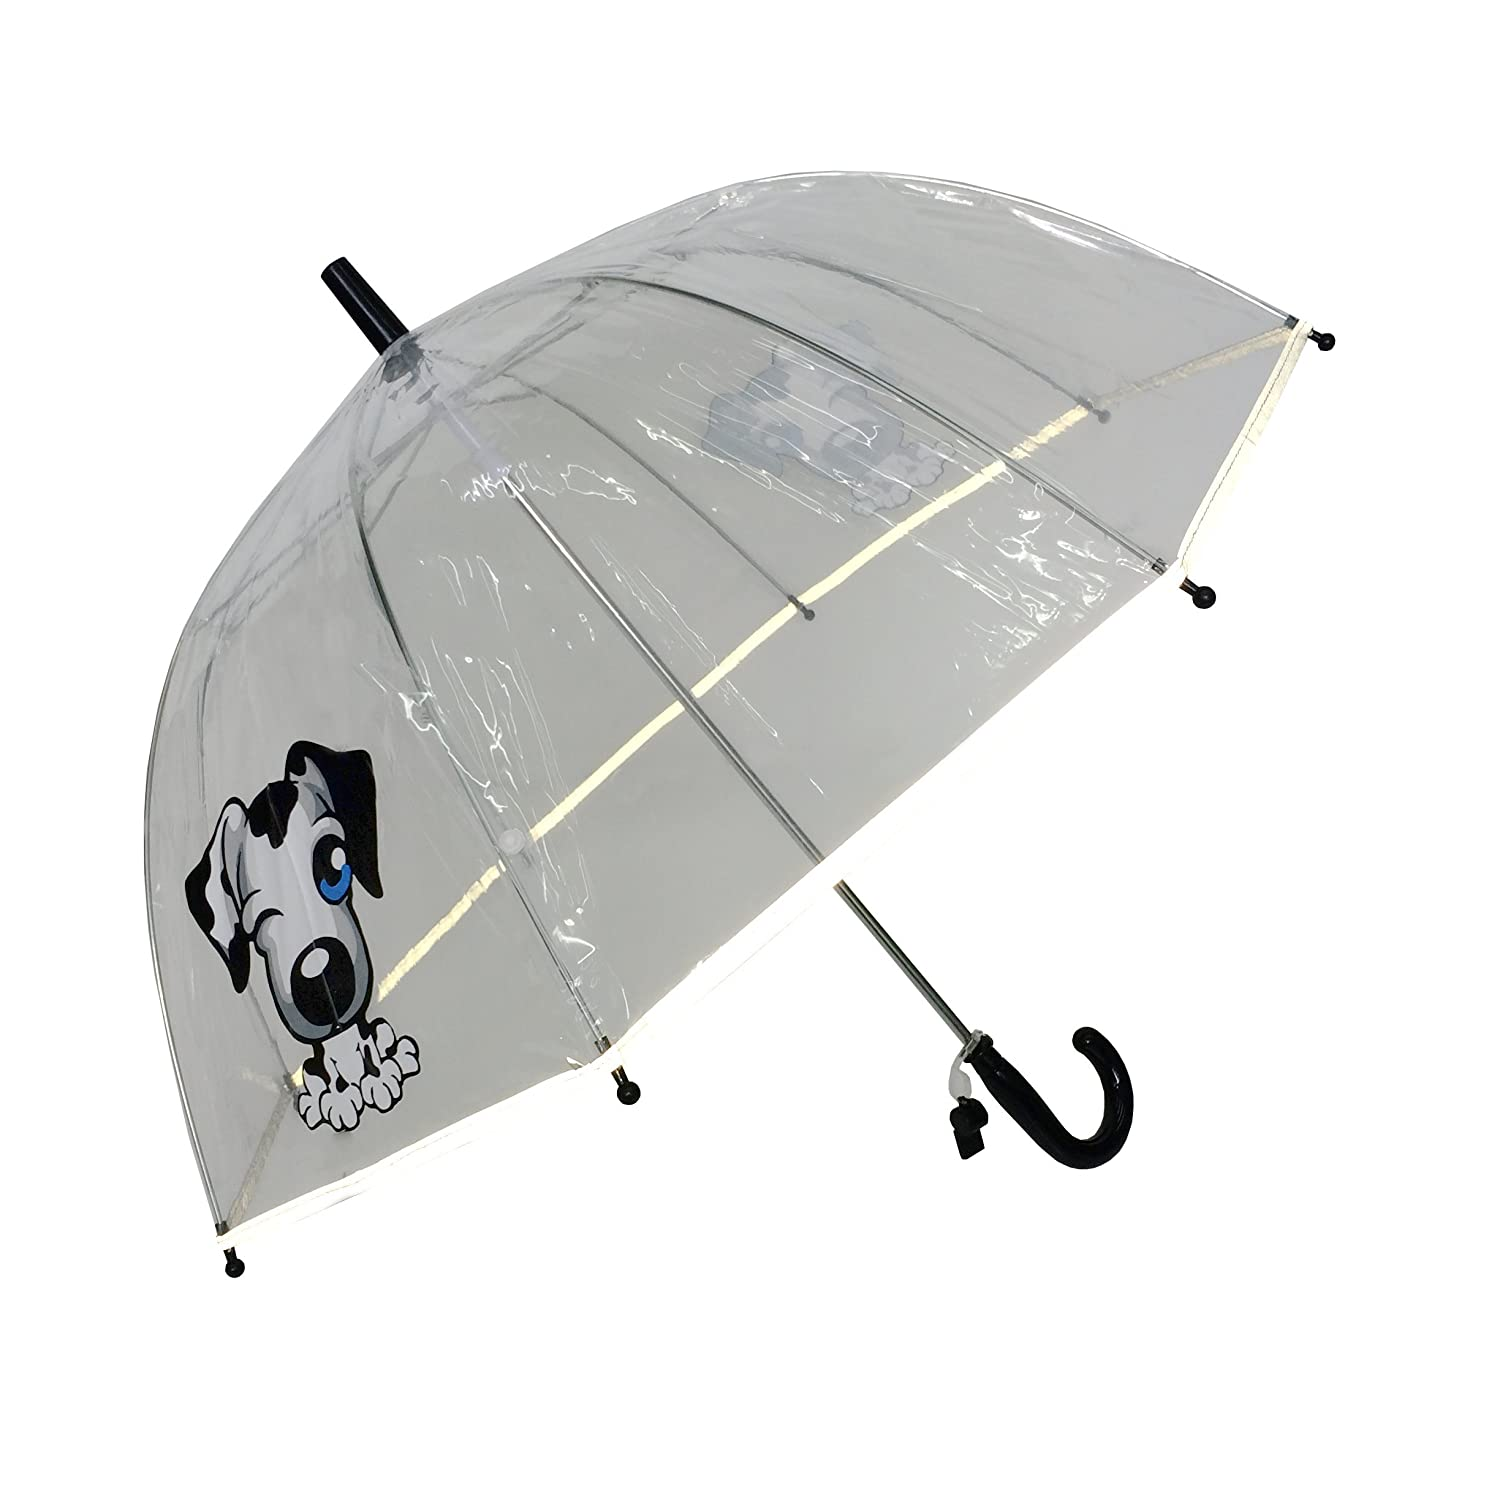 Amazon.com: SMATI KidsUmbrella dome transparent - The first umbrella has reflective stripe – extra safty to children in the darkness (Black Dog): Clothing